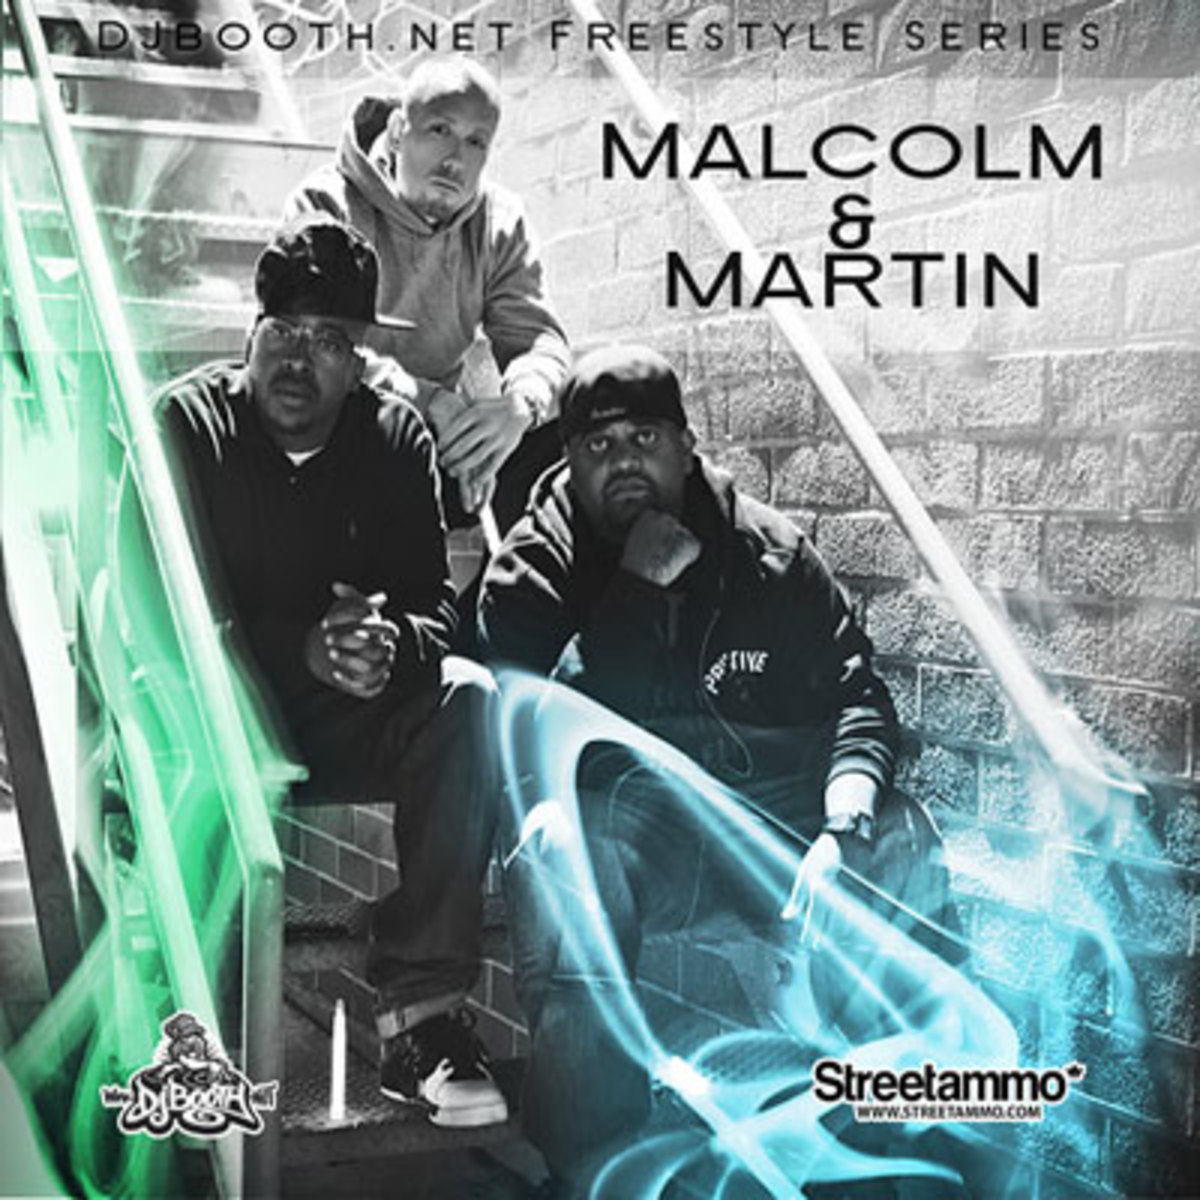 malcolmmartin-freestyle.jpg